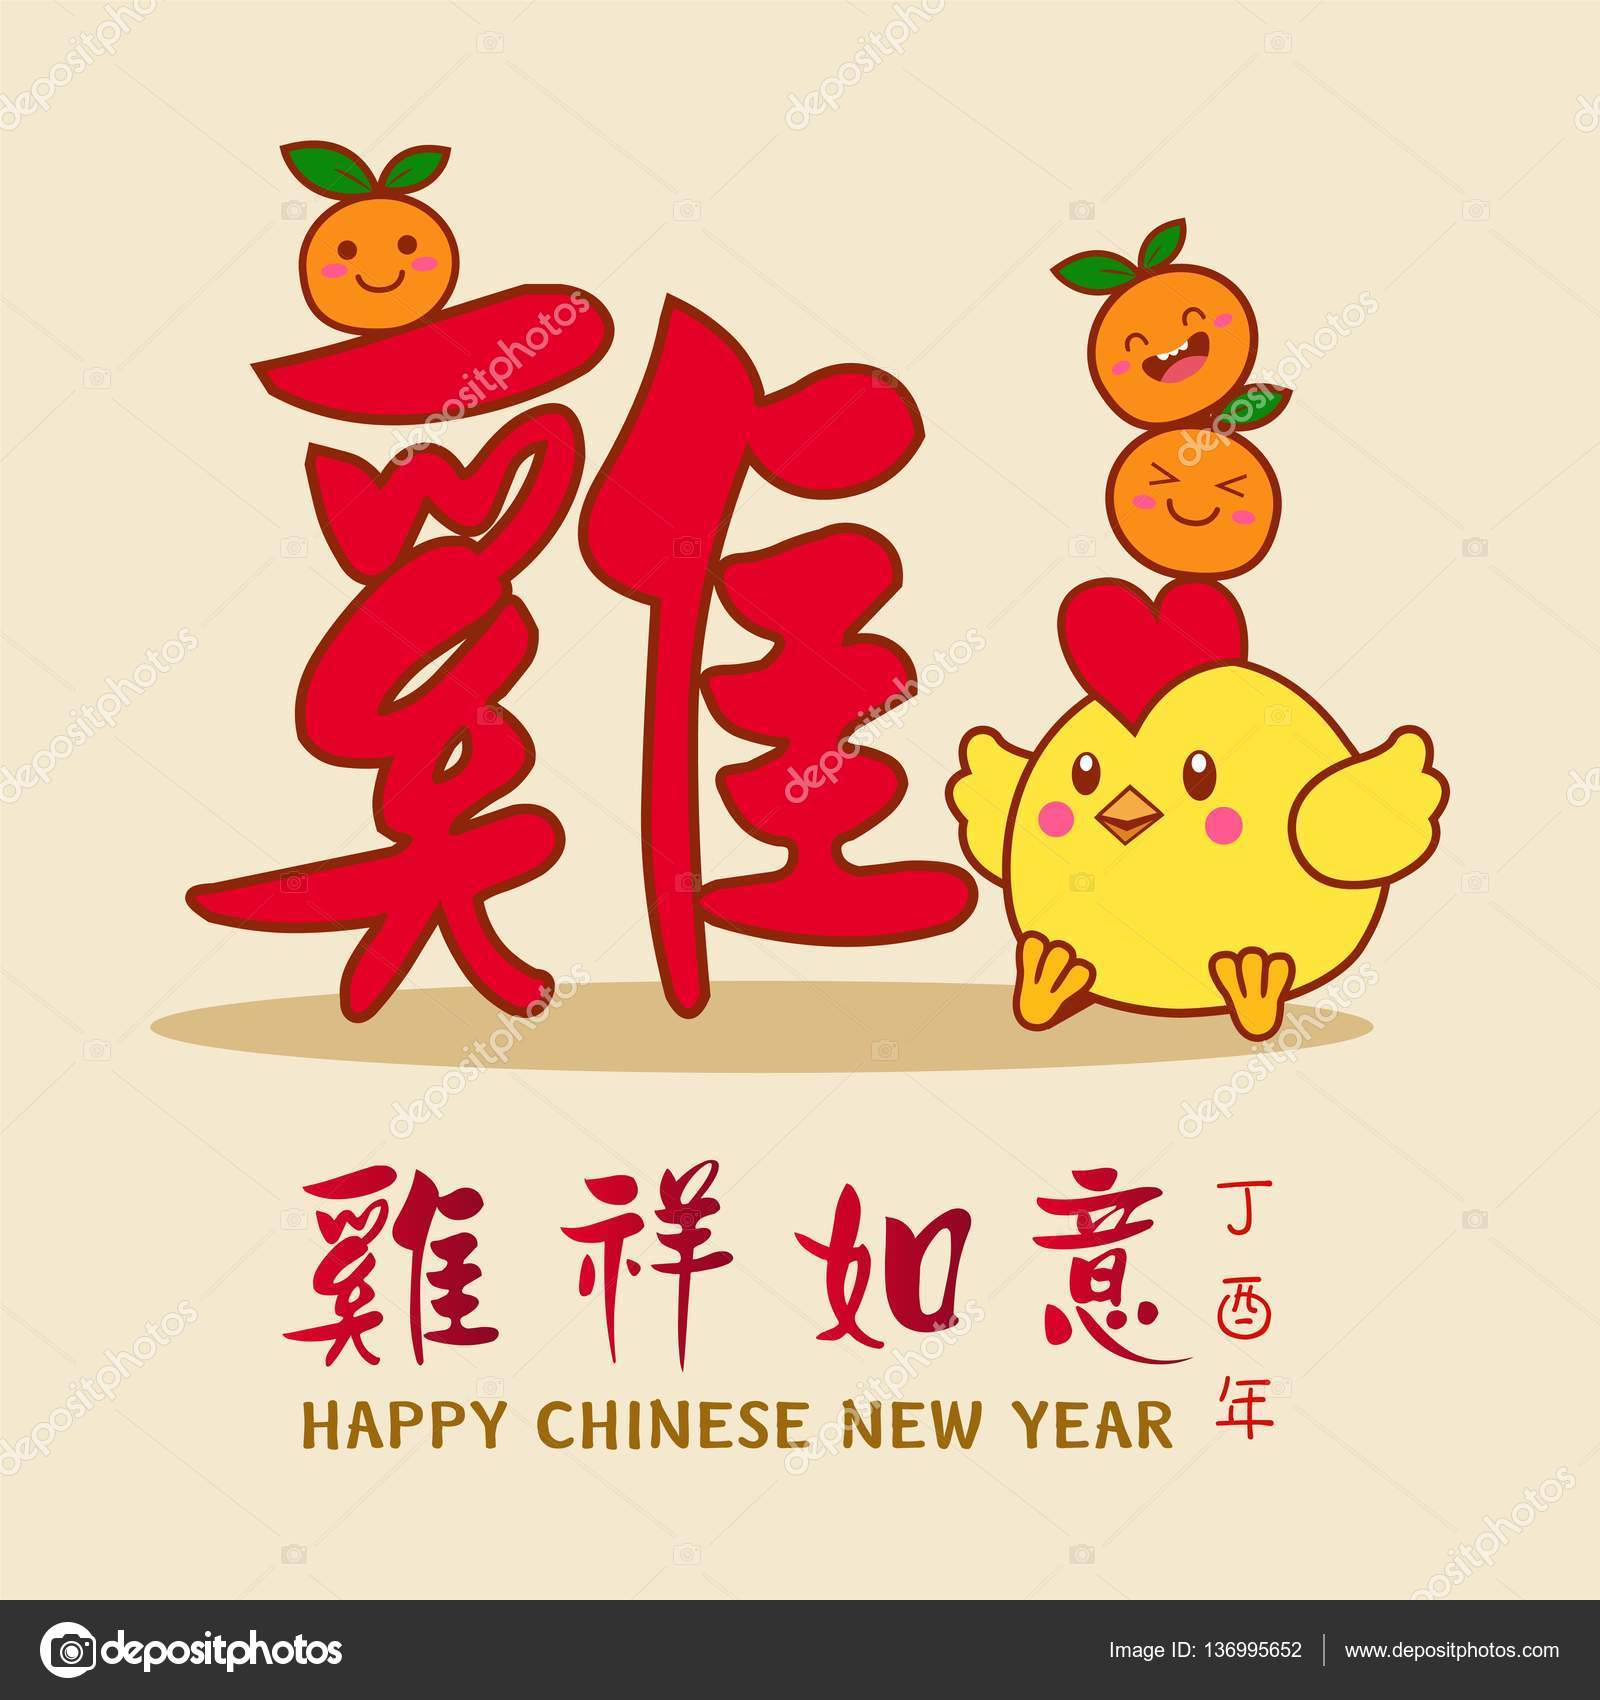 Chinese new year design with cute little chicken translation jin chinese new year design with cute little chicken translation jin ji bao xi golden chicken greetings a happy new year vector by catherinechin m4hsunfo